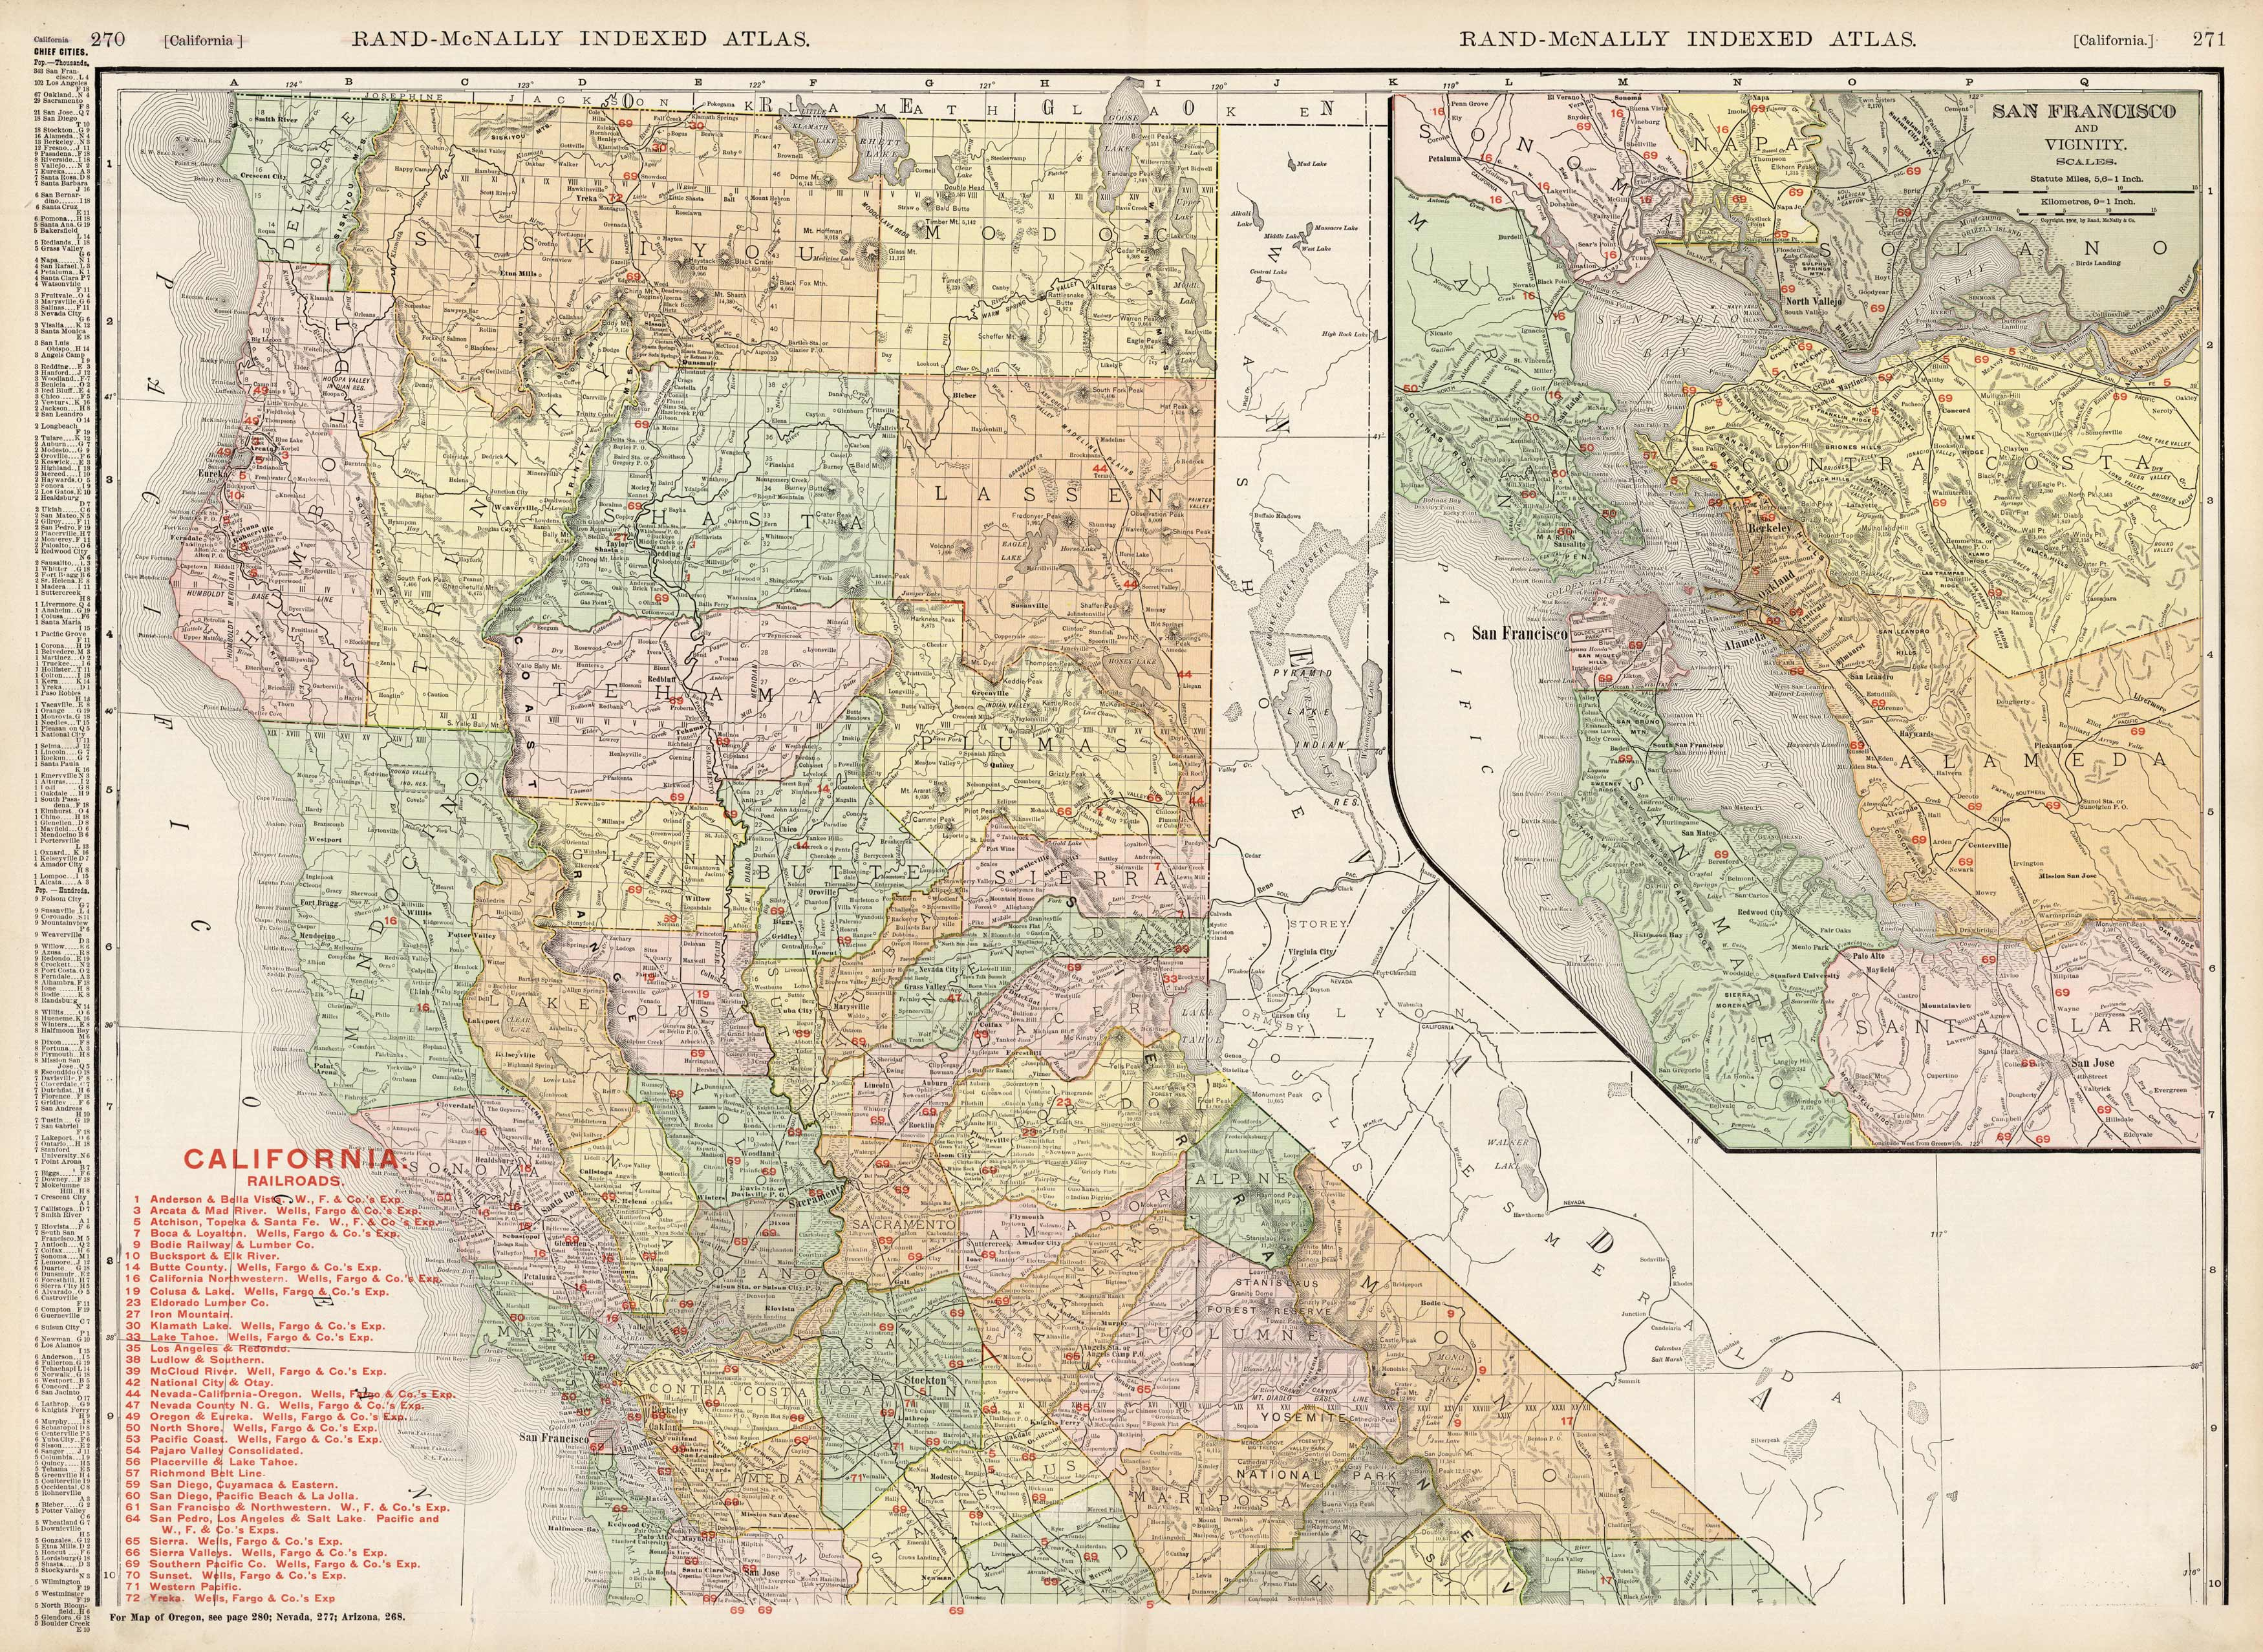 County Map of the State of California (with an inset map of San Francisco and Vicinity)